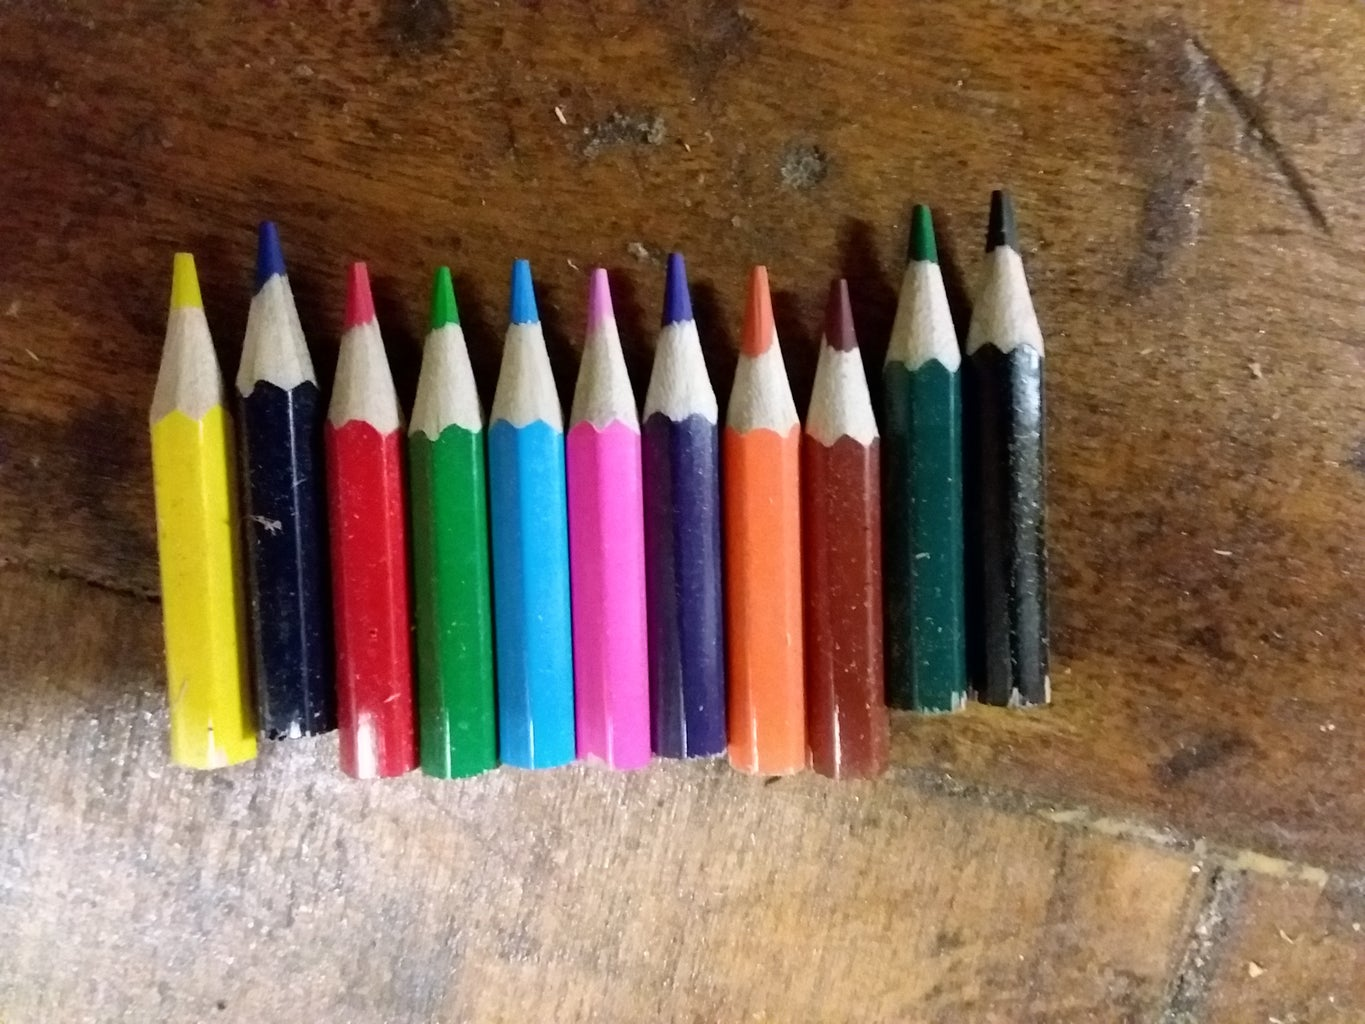 Unpack Your Pencils and Cut Them to Size